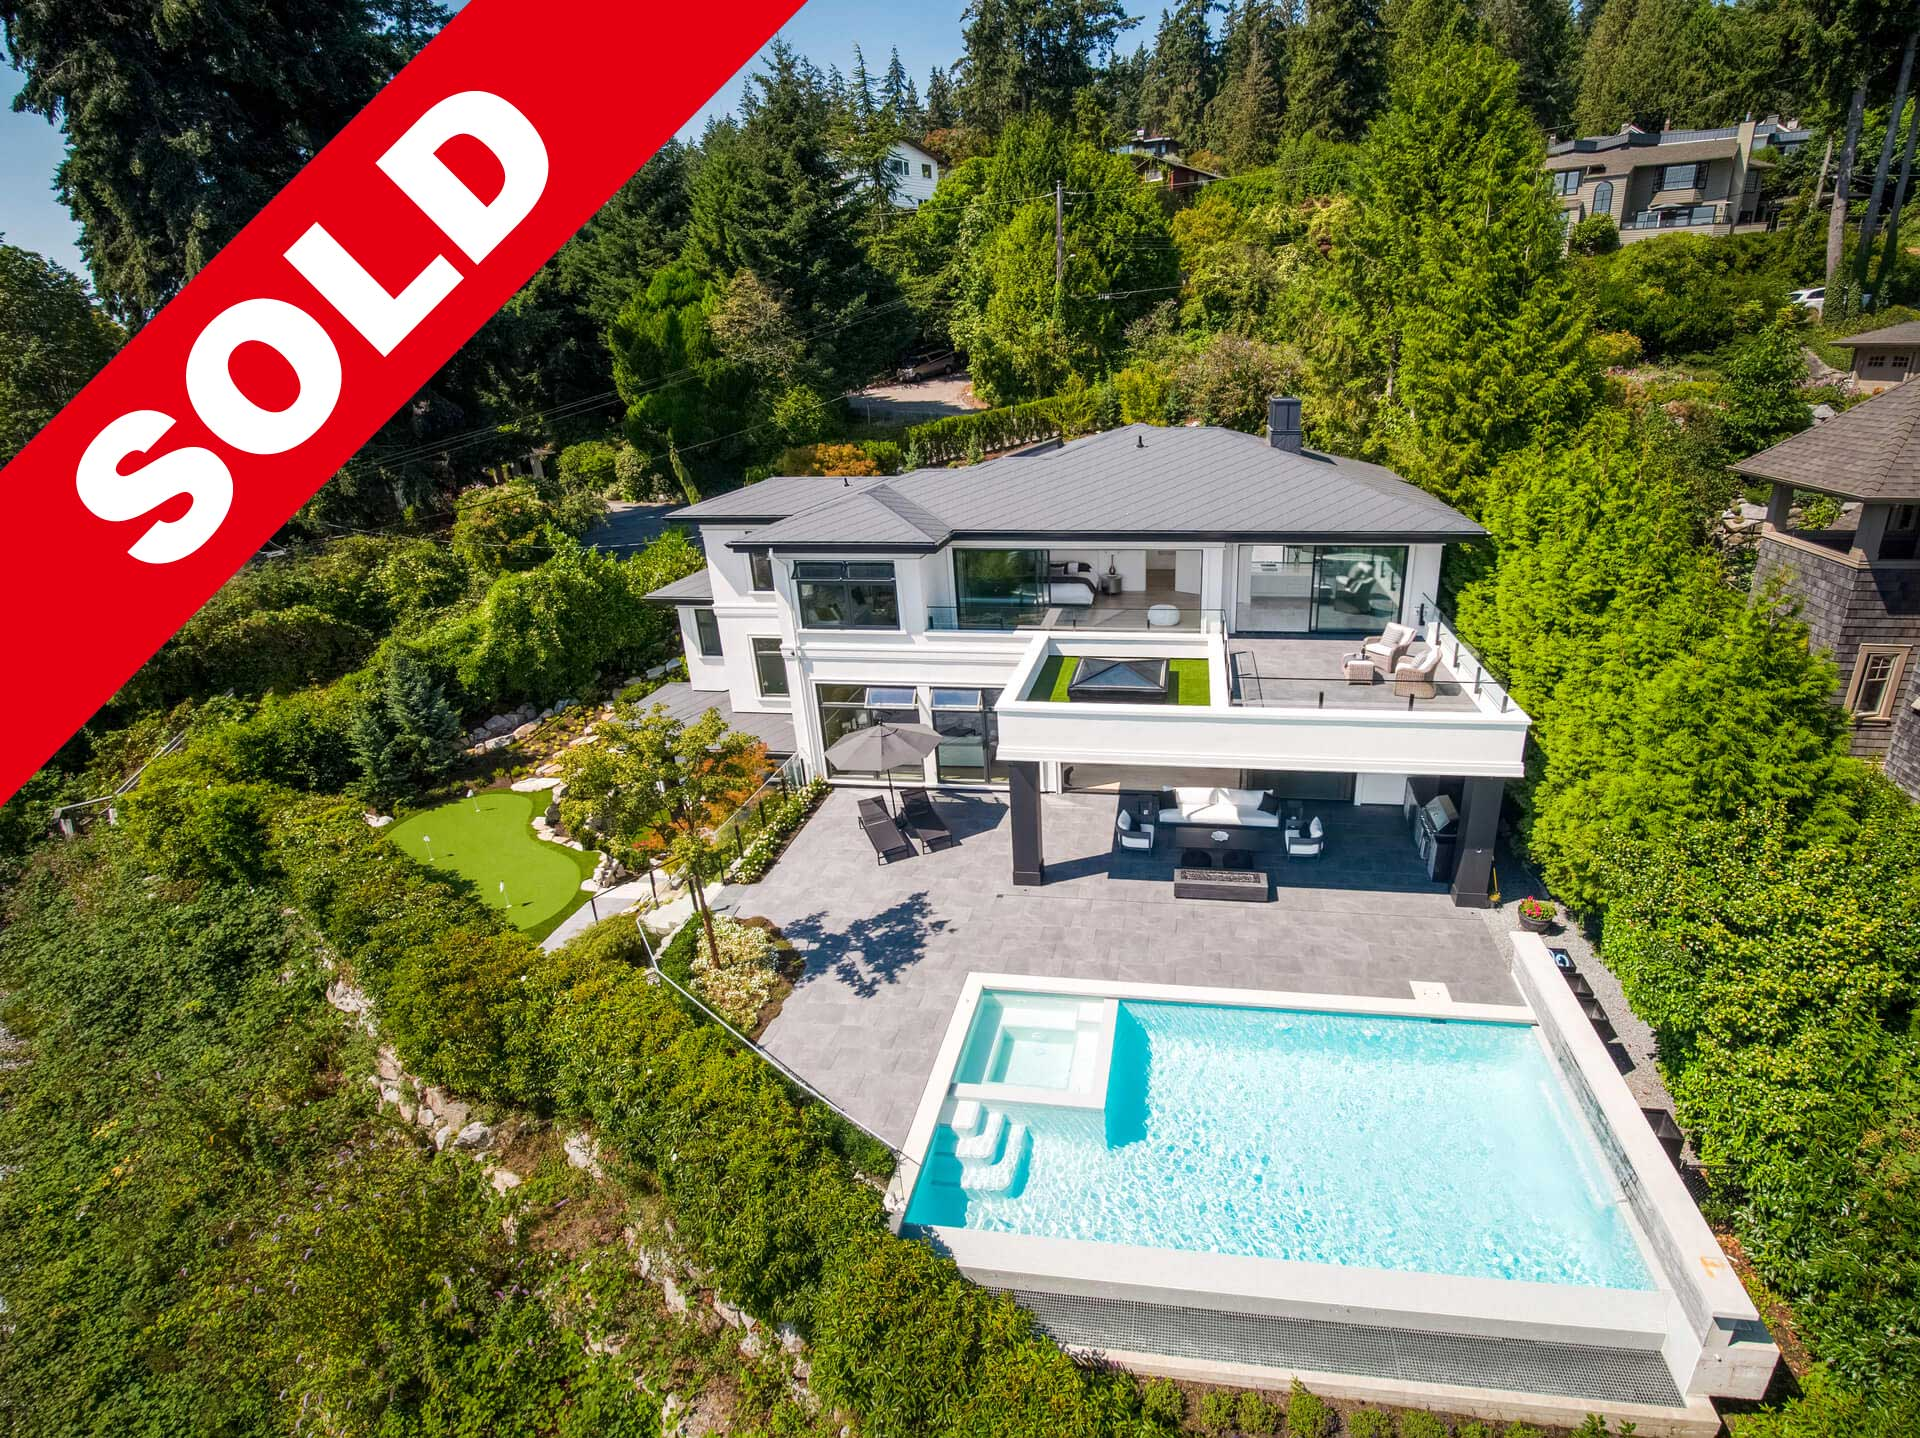 Recently sold home in West Vancouver